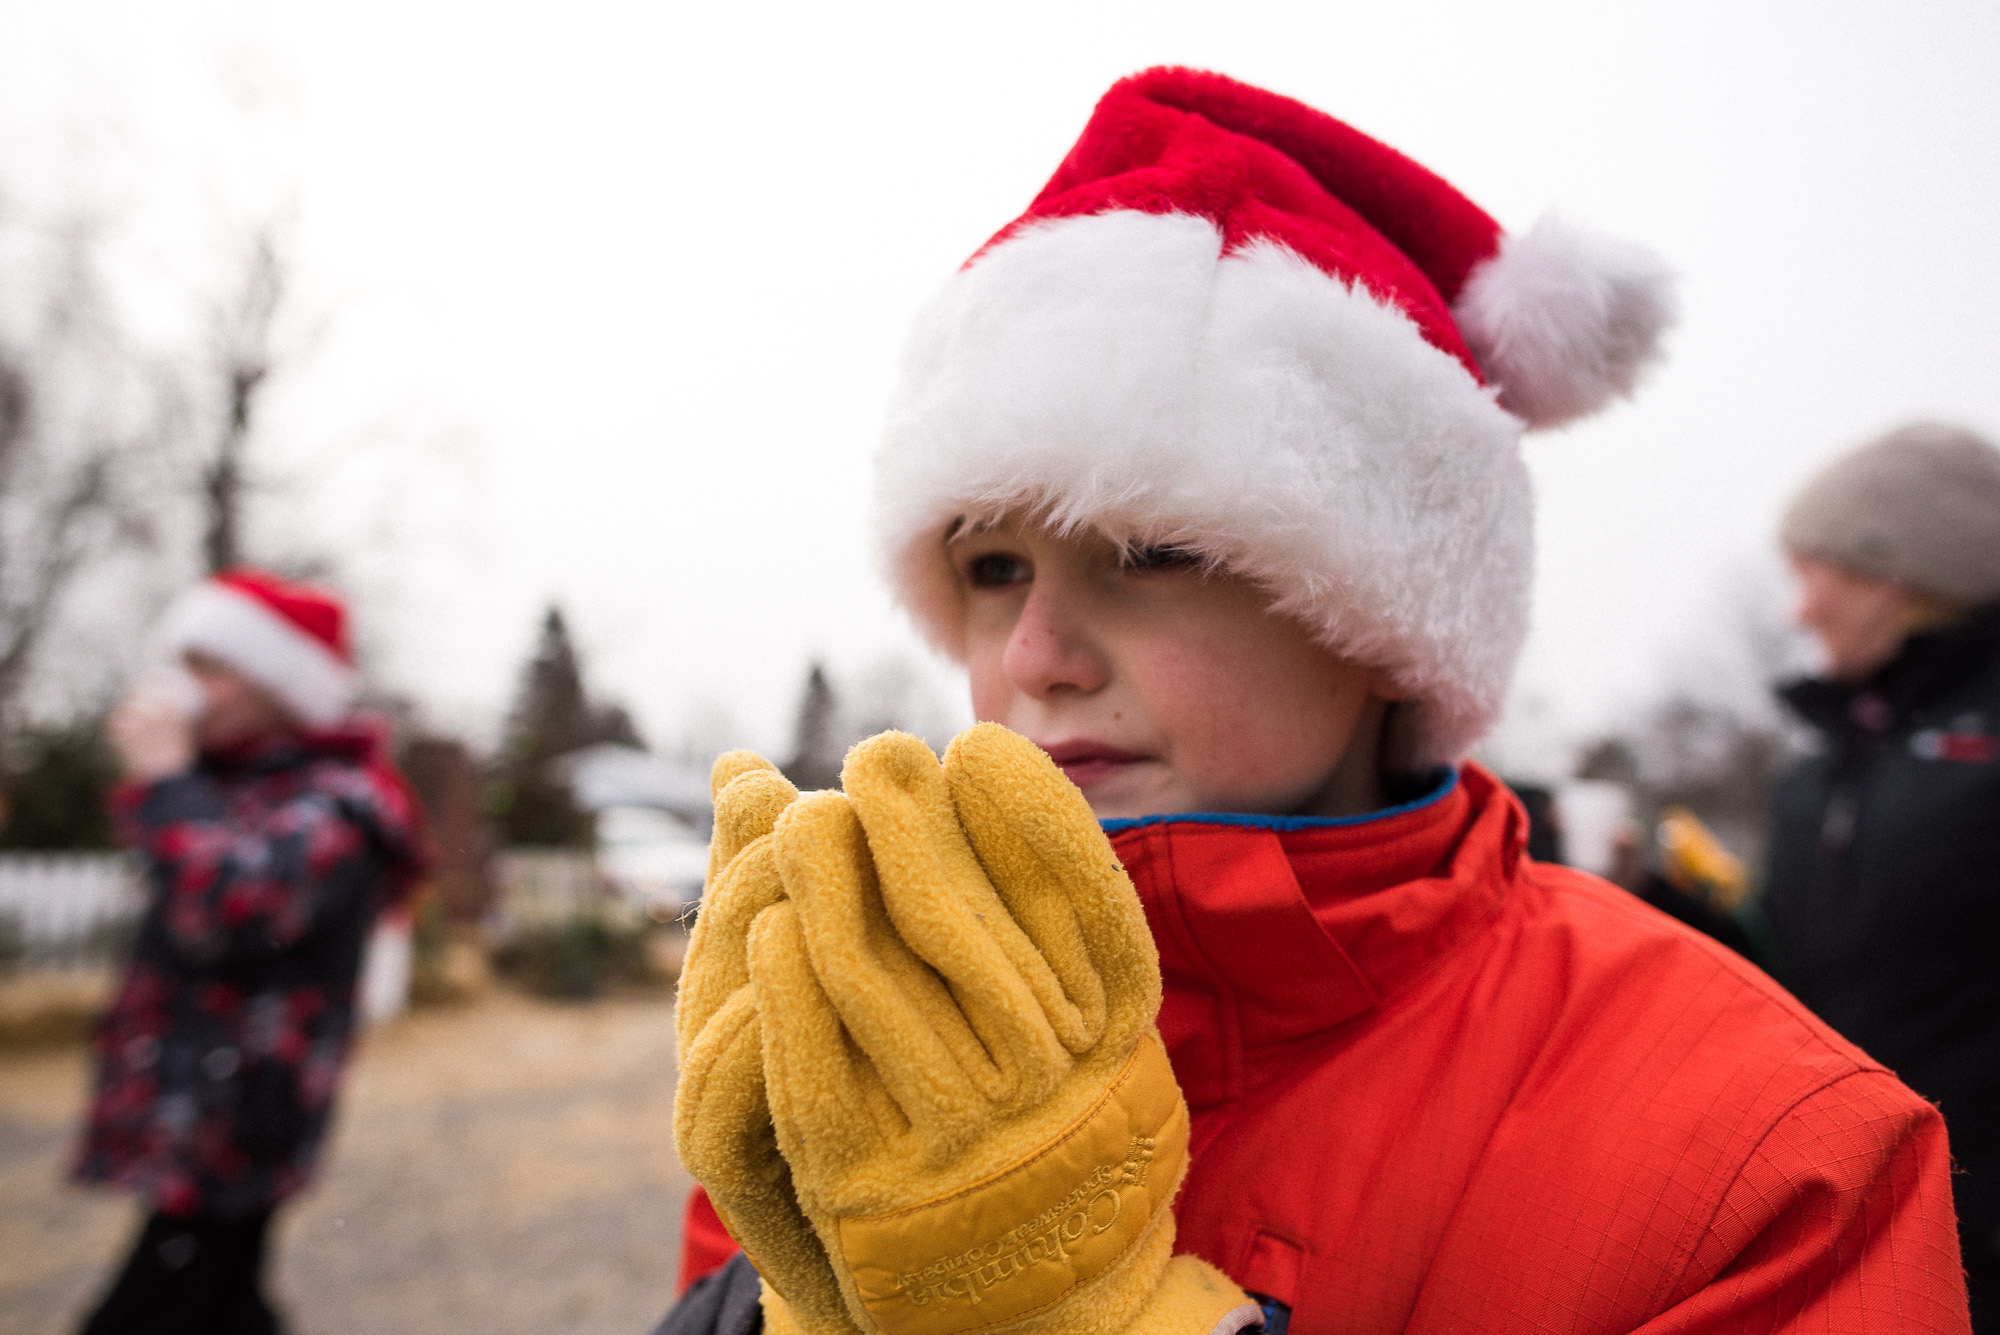 boy with Santa hat holds hot chocolate cut with yellow gloves